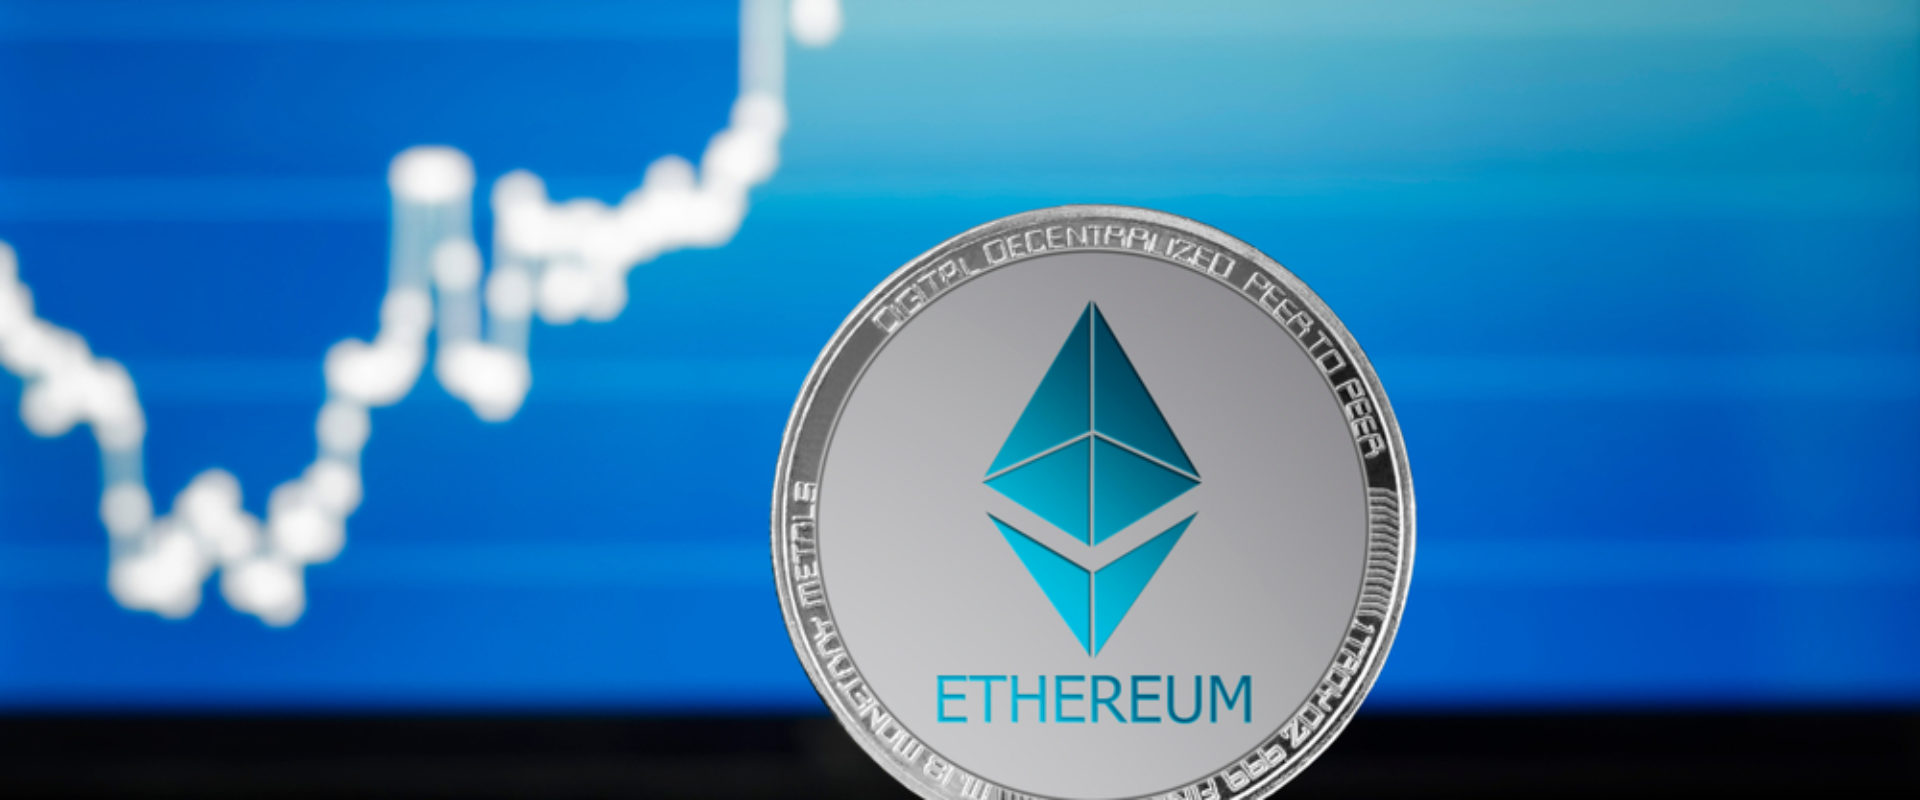 Ethereum: After Forming a Golden Cross, ETH May Be Ready to Surge Towards $300